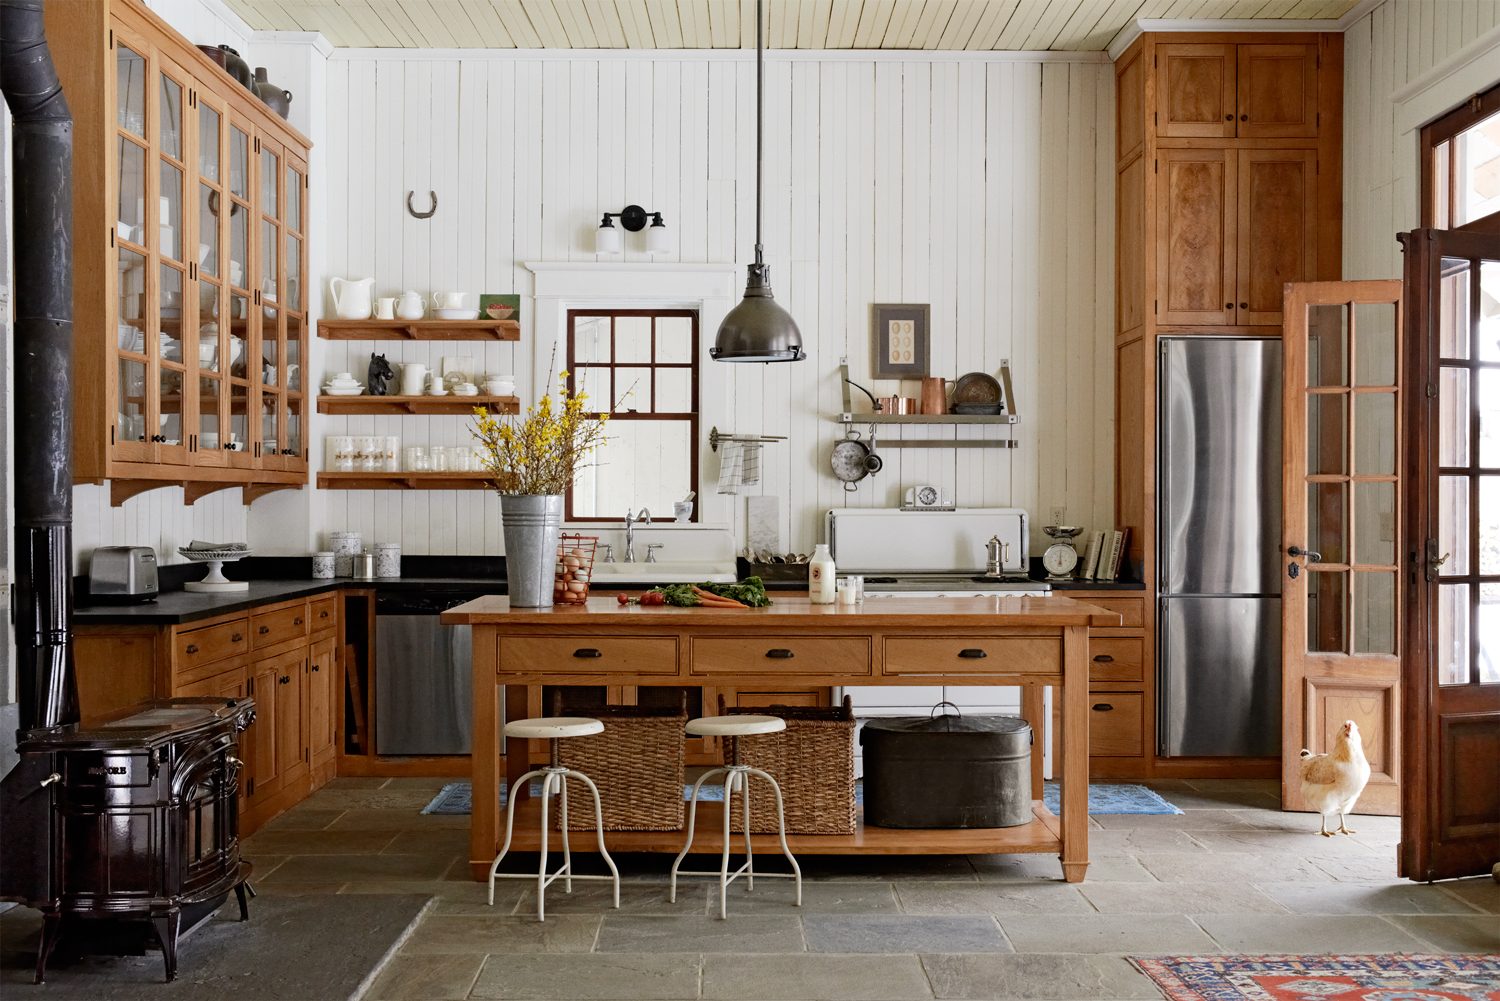 8 Ways to Add Authentic Farmhouse Style to Your Kitchen Jeff and Nancy Wilk